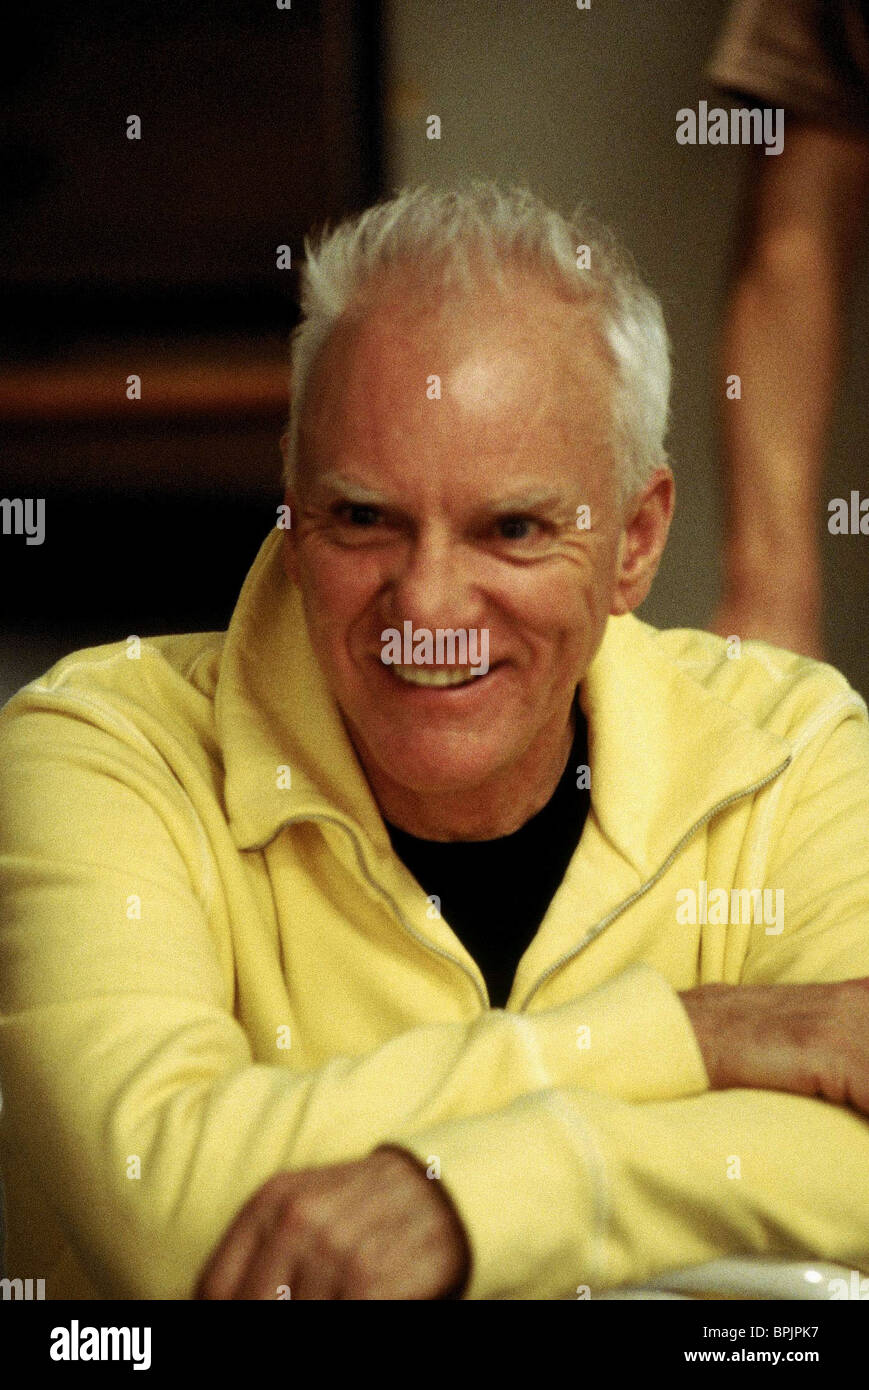 Malcolm mcdowell the company 2003 stock image